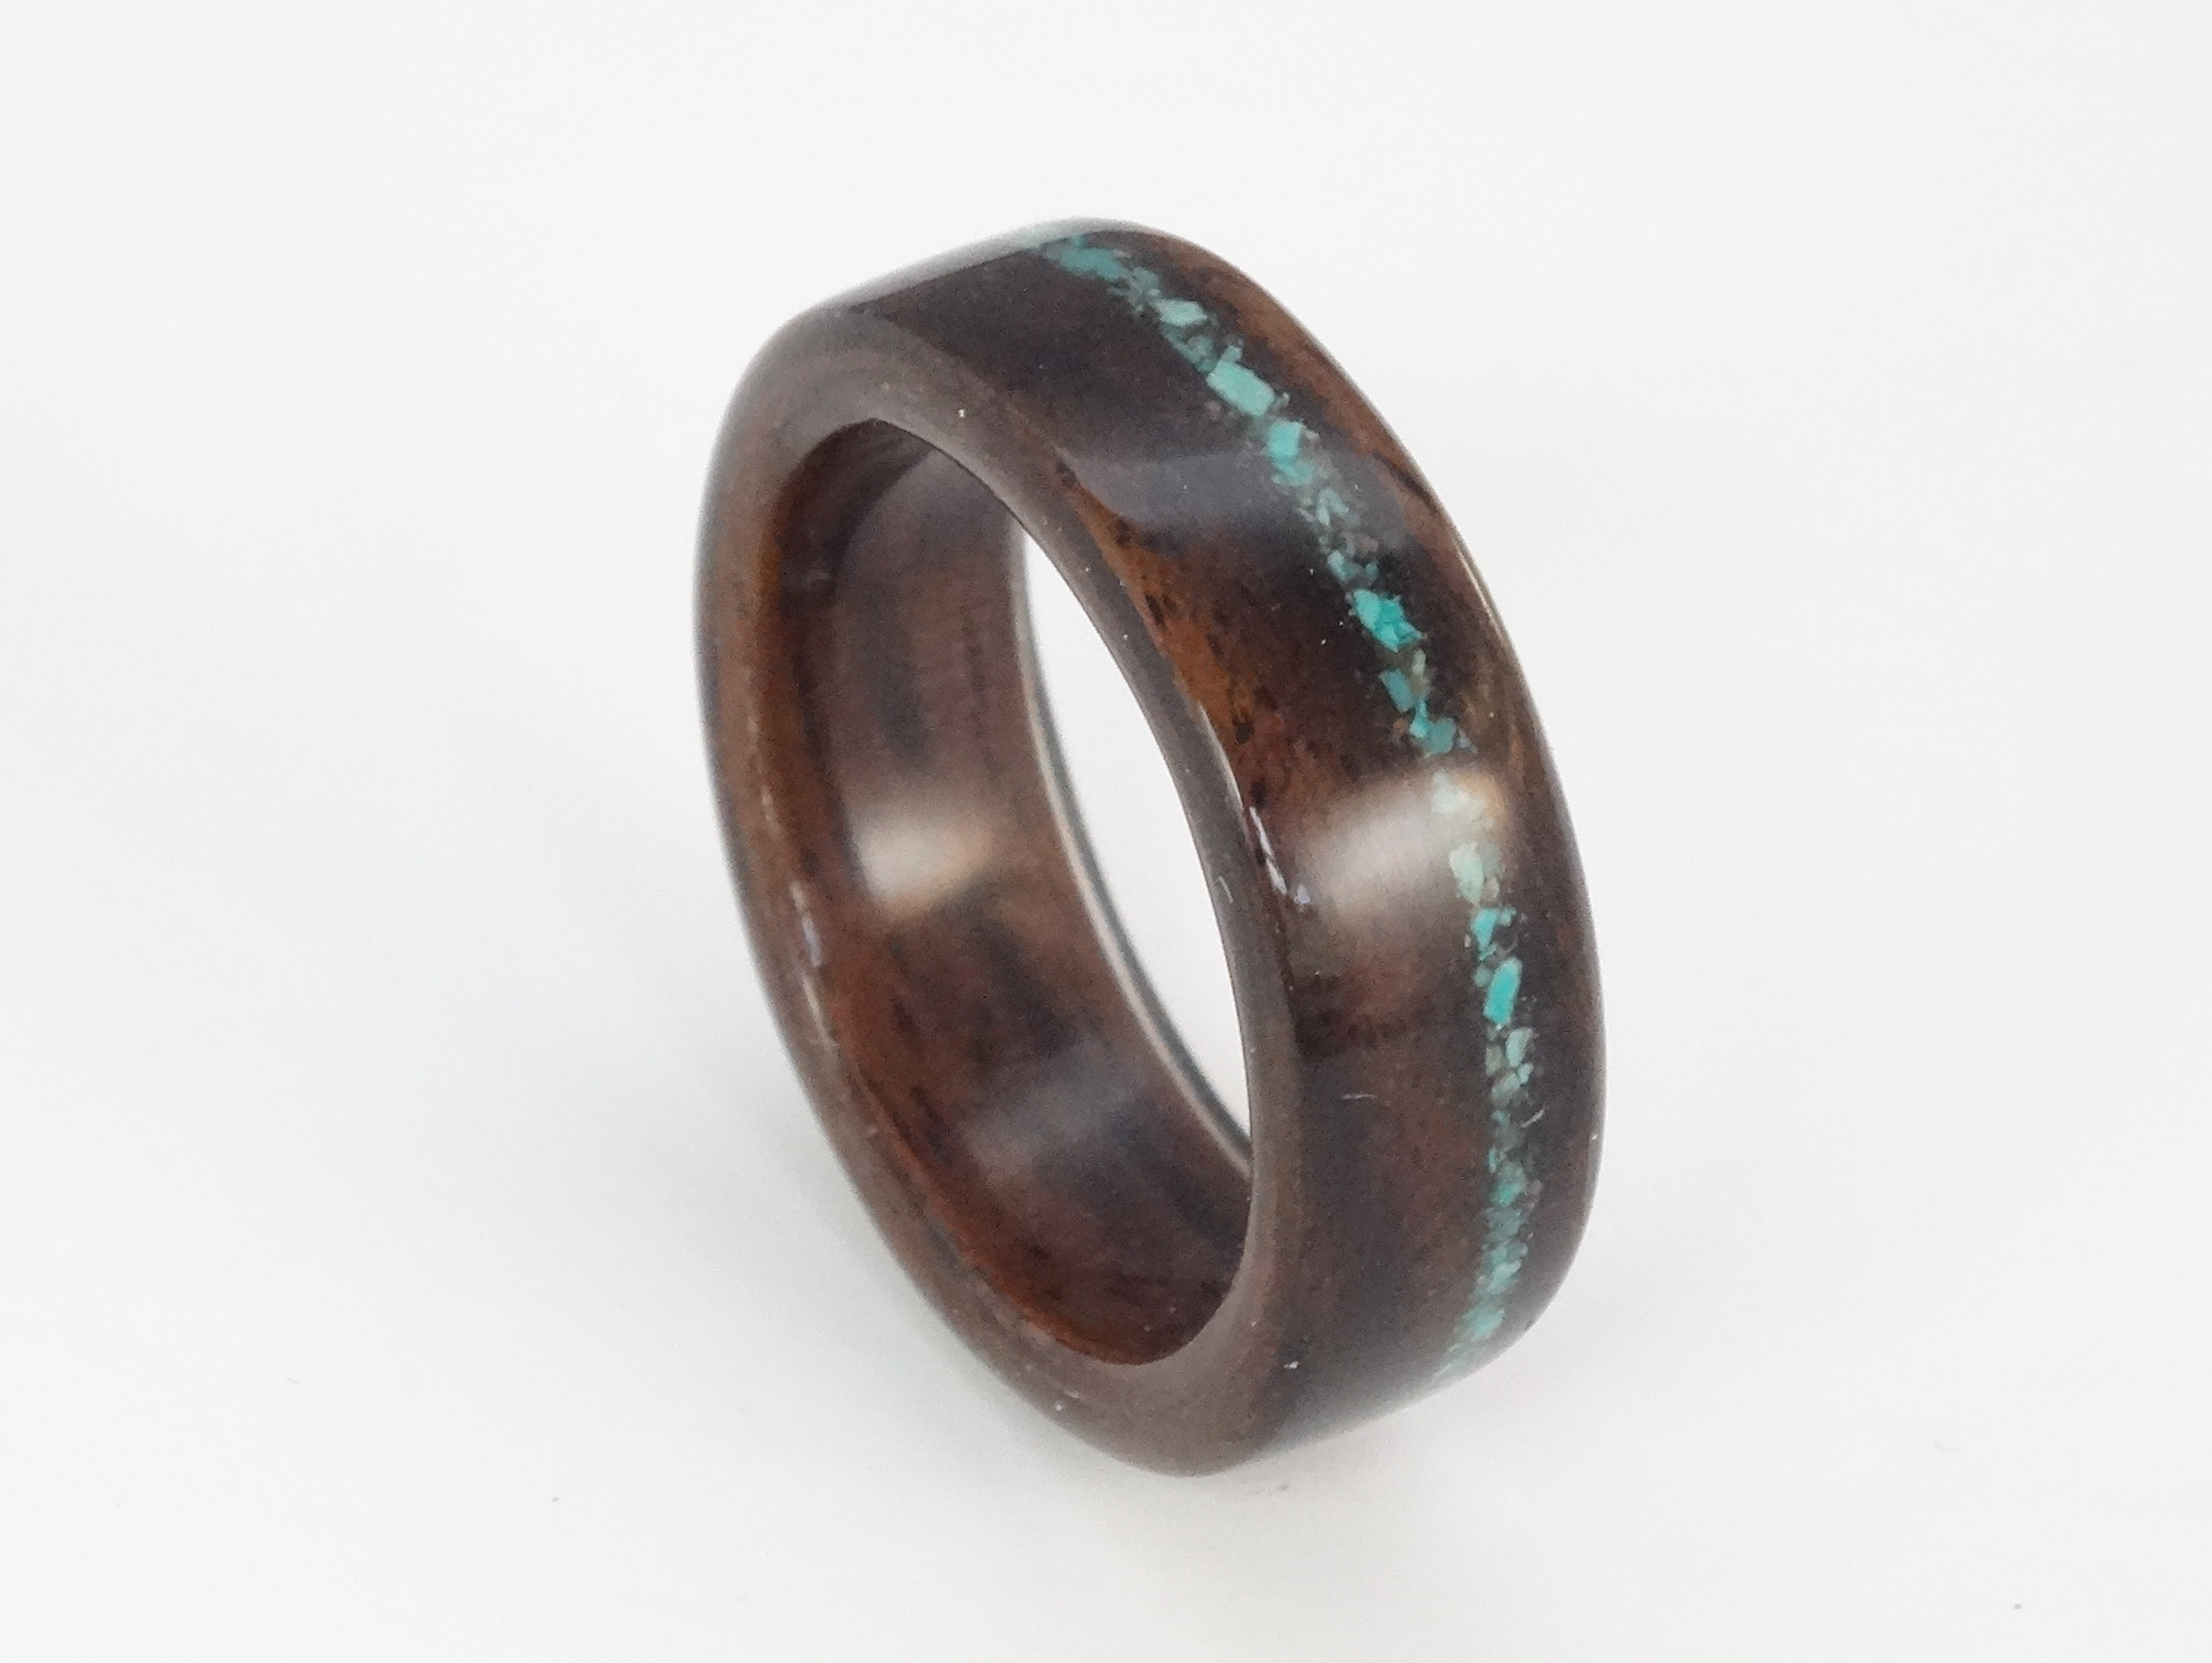 from story maple rings wedding your salvaged each set wooden a wood are walnut and beautiful made handcrafted engagement simply pin ring tells